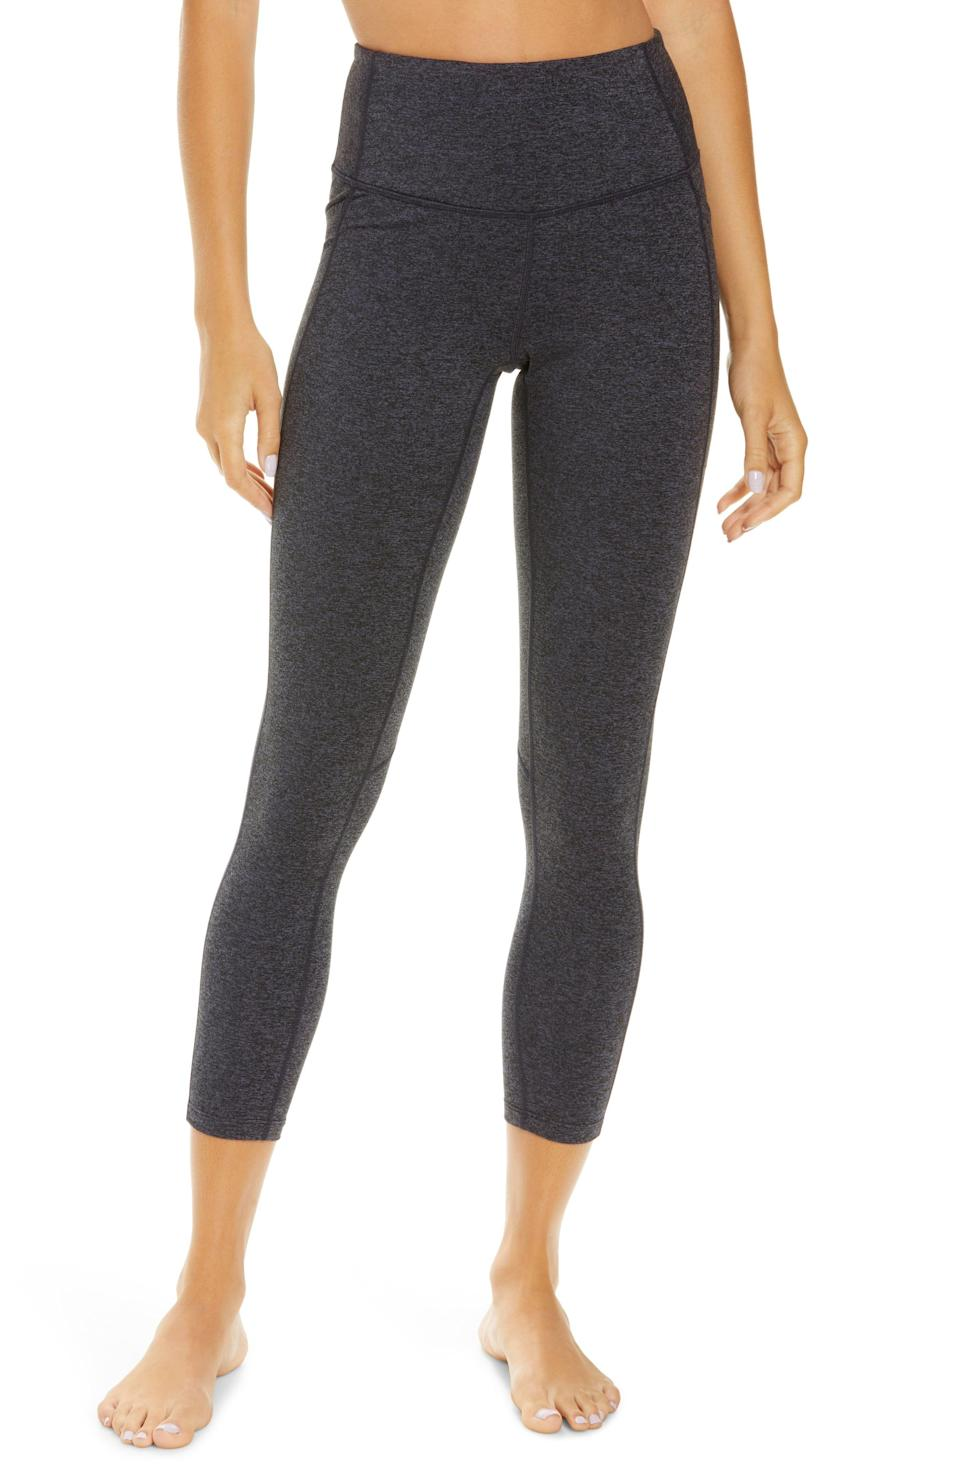 """<p><strong>Live In High Waist Leggings</strong></p><p>nordstrom.com</p><p><strong>$29.50</strong></p><p><a href=""""https://go.redirectingat.com?id=74968X1596630&url=https%3A%2F%2Fwww.nordstrom.com%2Fs%2Fzella-live-in-high-waist-leggings%2F5902192&sref=https%3A%2F%2Fwww.prevention.com%2Ffitness%2Fworkout-clothes-gear%2Fg36840253%2Fbest-athleisure-brands%2F"""" rel=""""nofollow noopener"""" target=""""_blank"""" data-ylk=""""slk:Shop Now"""" class=""""link rapid-noclick-resp"""">Shop Now</a></p><p>Nordstrom-made brand <strong><a href=""""https://go.redirectingat.com?id=74968X1596630&url=https%3A%2F%2Fwww.nordstrom.com%2Fbrands%2Fzella&sref=https%3A%2F%2Fwww.prevention.com%2Ffitness%2Fworkout-clothes-gear%2Fg36840253%2Fbest-athleisure-brands%2F"""" rel=""""nofollow noopener"""" target=""""_blank"""" data-ylk=""""slk:Zella"""" class=""""link rapid-noclick-resp"""">Zella</a></strong> combines approachable prices with performance technology for a supportive experience, featured in pieces like these <a href=""""https://go.redirectingat.com?id=74968X1596630&url=https%3A%2F%2Fwww.nordstrom.com%2Fs%2Fzella-live-in-high-waist-leggings%2F4312529&sref=https%3A%2F%2Fwww.prevention.com%2Ffitness%2Fworkout-clothes-gear%2Fg36840253%2Fbest-athleisure-brands%2F"""" rel=""""nofollow noopener"""" target=""""_blank"""" data-ylk=""""slk:high-waisted, bum-sculpting leggings"""" class=""""link rapid-noclick-resp"""">high-waisted, bum-sculpting leggings</a> or an <a href=""""https://go.redirectingat.com?id=74968X1596630&url=https%3A%2F%2Fwww.nordstrom.com%2Fs%2Fzella-seamless-strappy-sports-bra%2F5468913&sref=https%3A%2F%2Fwww.prevention.com%2Ffitness%2Fworkout-clothes-gear%2Fg36840253%2Fbest-athleisure-brands%2F"""" rel=""""nofollow noopener"""" target=""""_blank"""" data-ylk=""""slk:always-there-for-you bra"""" class=""""link rapid-noclick-resp"""">always-there-for-you bra</a>. Whether you're looking for a casual pair of joggers or a wrap jacket that transitions easily from day to night, the selection at Zella is robust and capable of serving both athletic and everyday needs.</p>"""